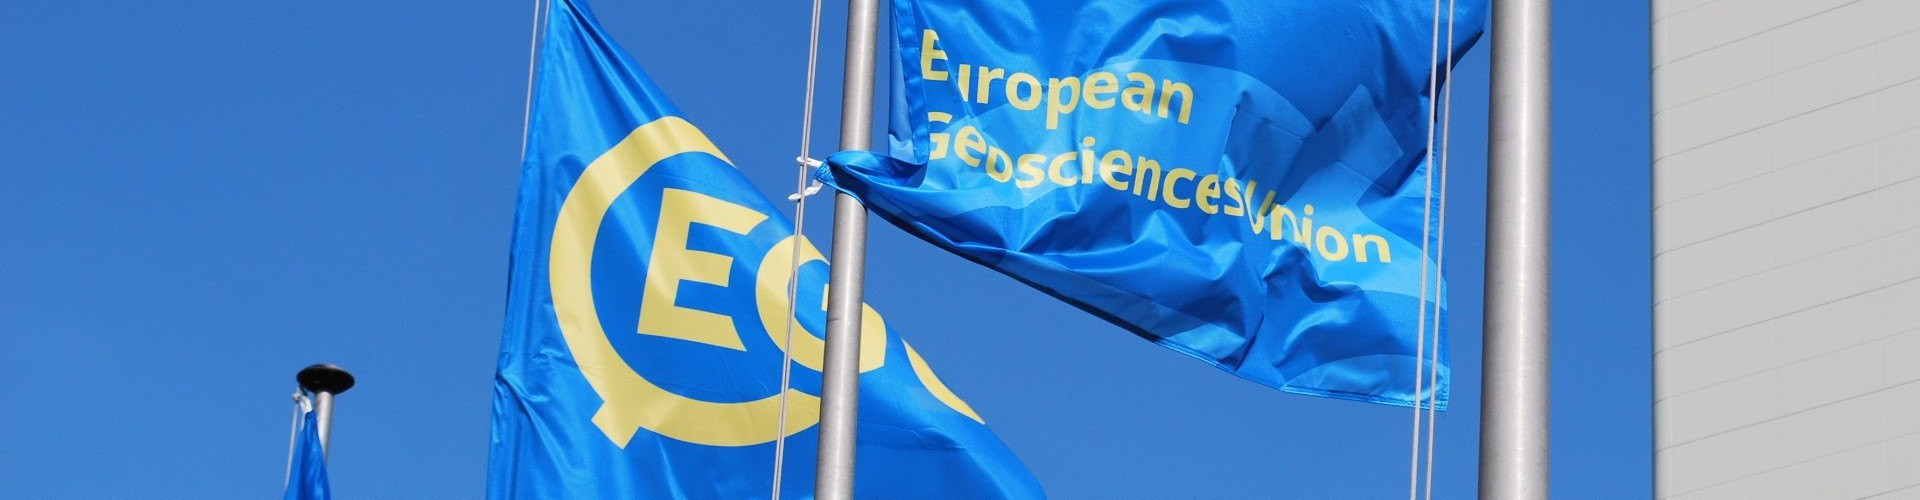 EGU Flags at EGU General Assembly 2016 (Credit: Kai Boggild, distributed via imaggeo.egu.eu)